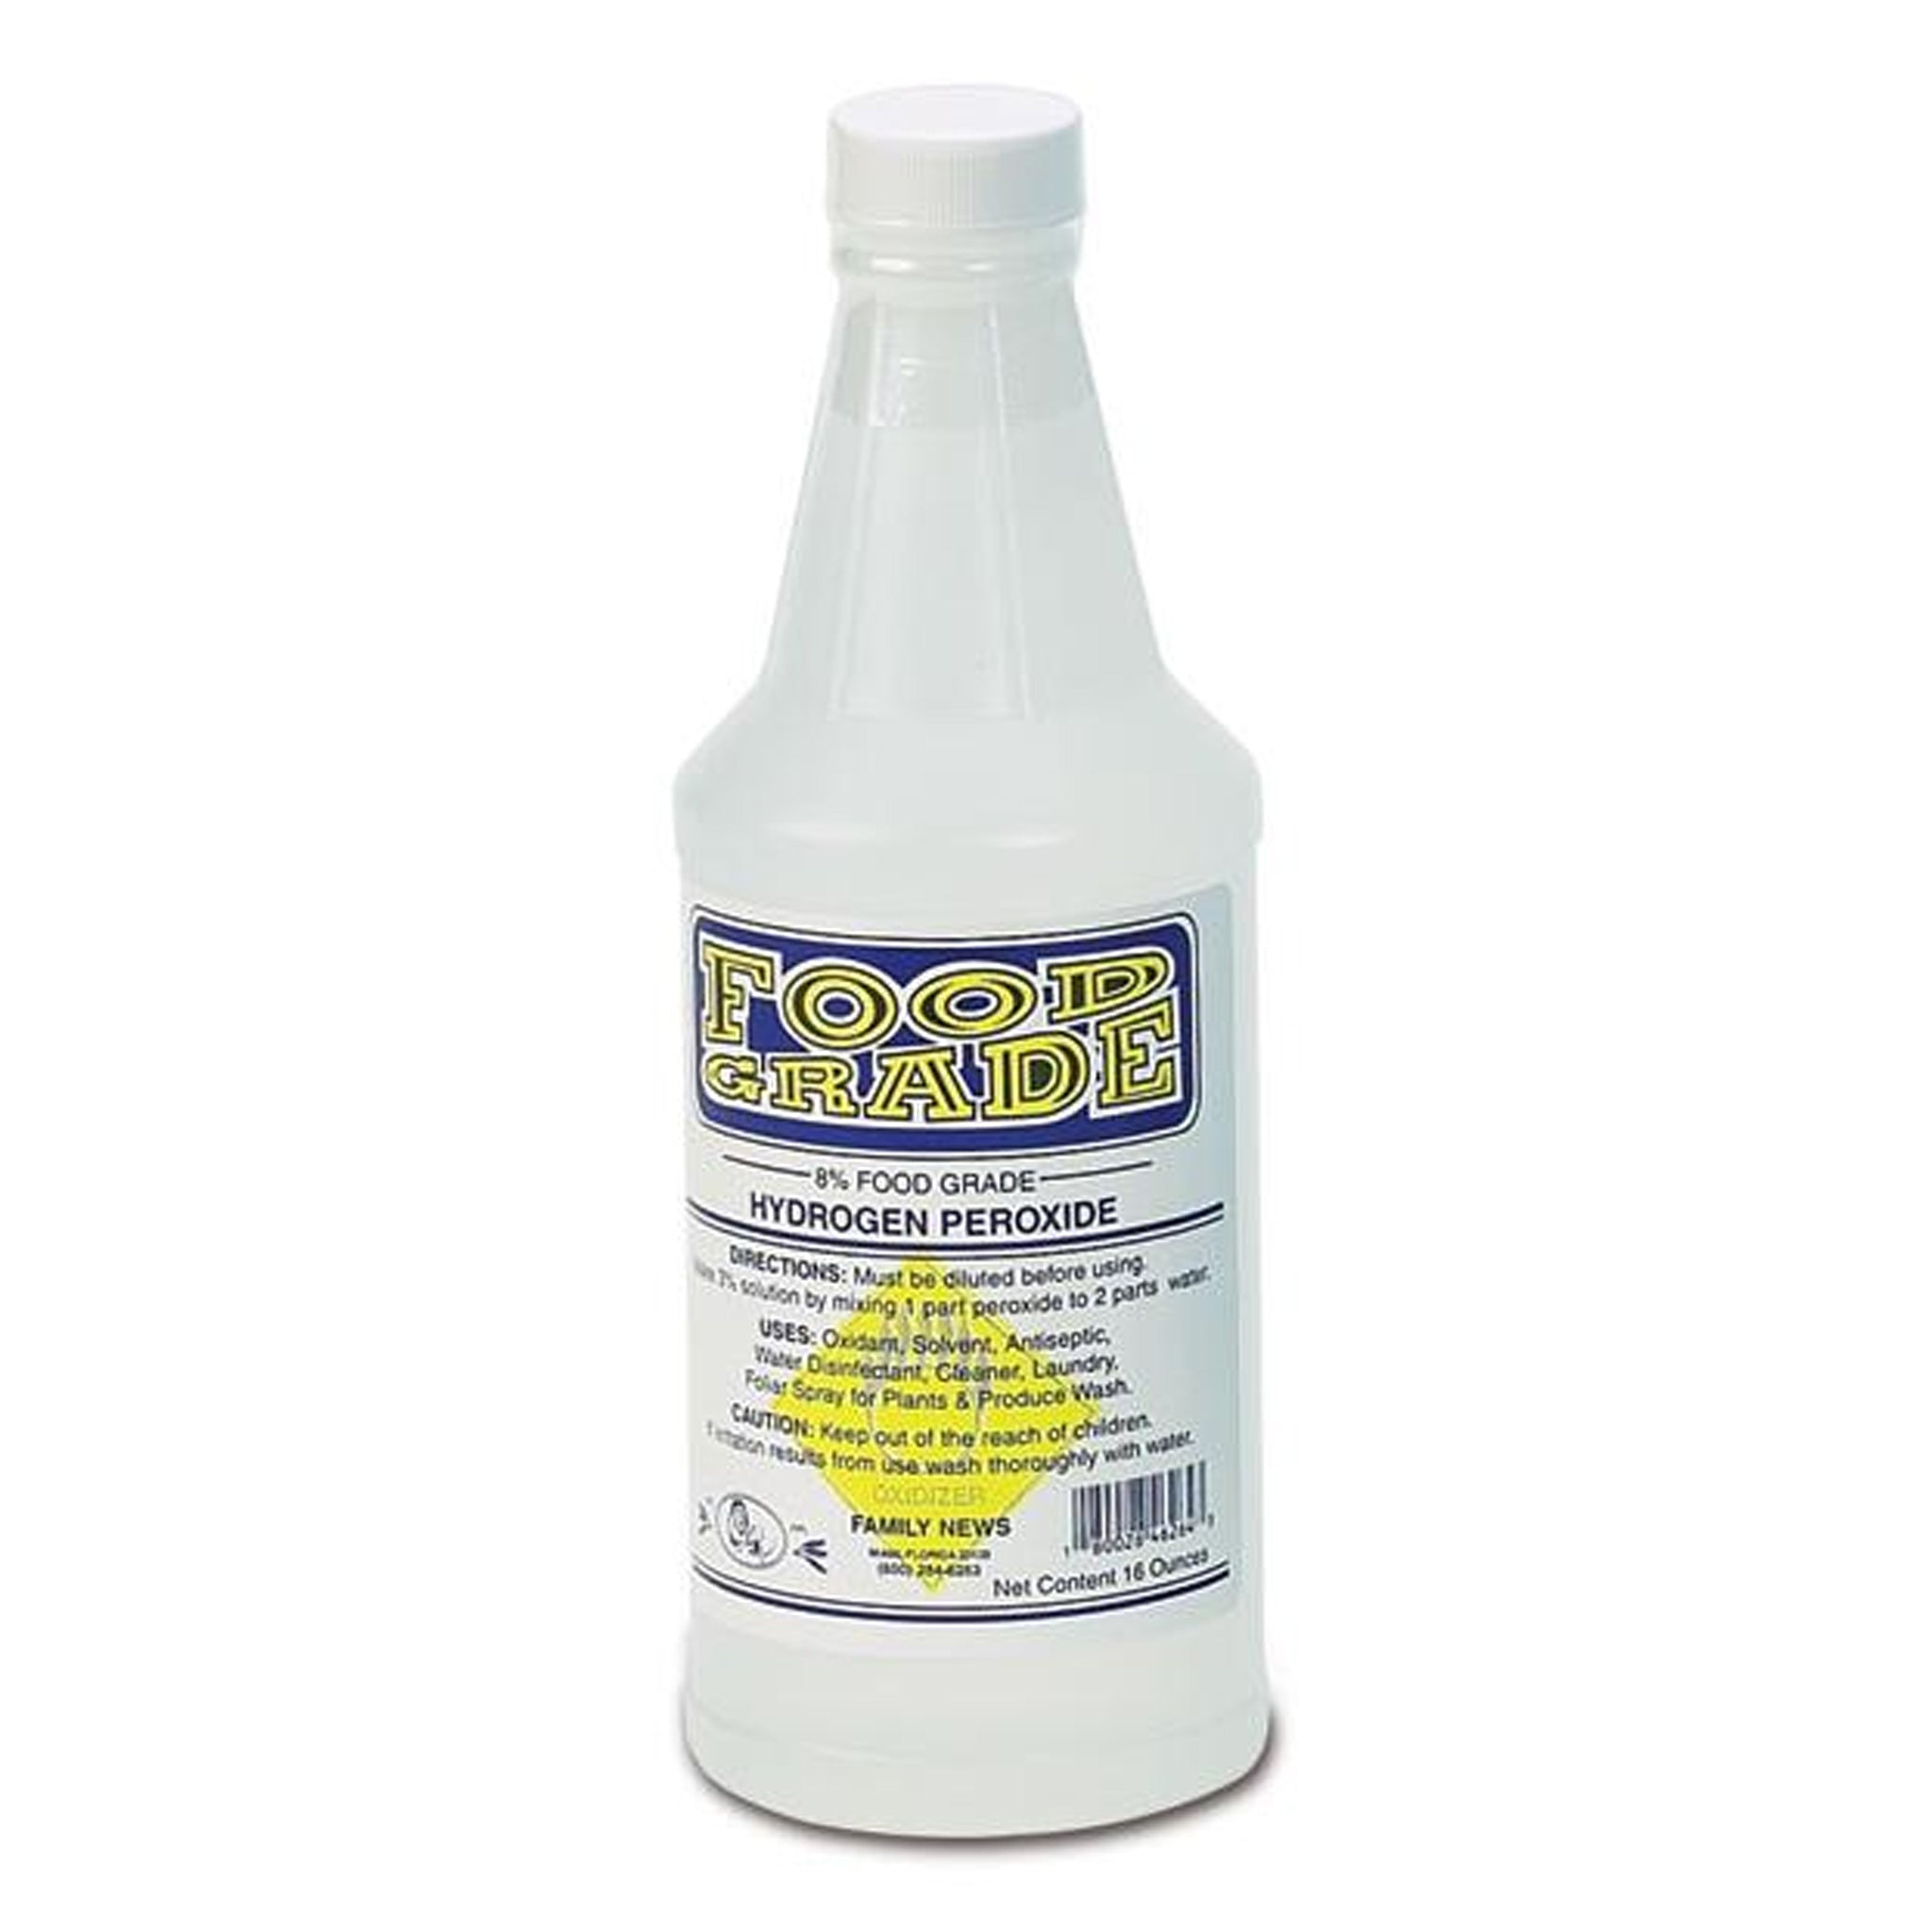 Food grade 8% hydrogen peroxide is the safe way to ensure clean and healthy sprouts. Add as little as 2 or 3 capfuls to a full barrel of water in your Freshlife Sprouter to ensure sprouts that are free from mold or bacteria growth.